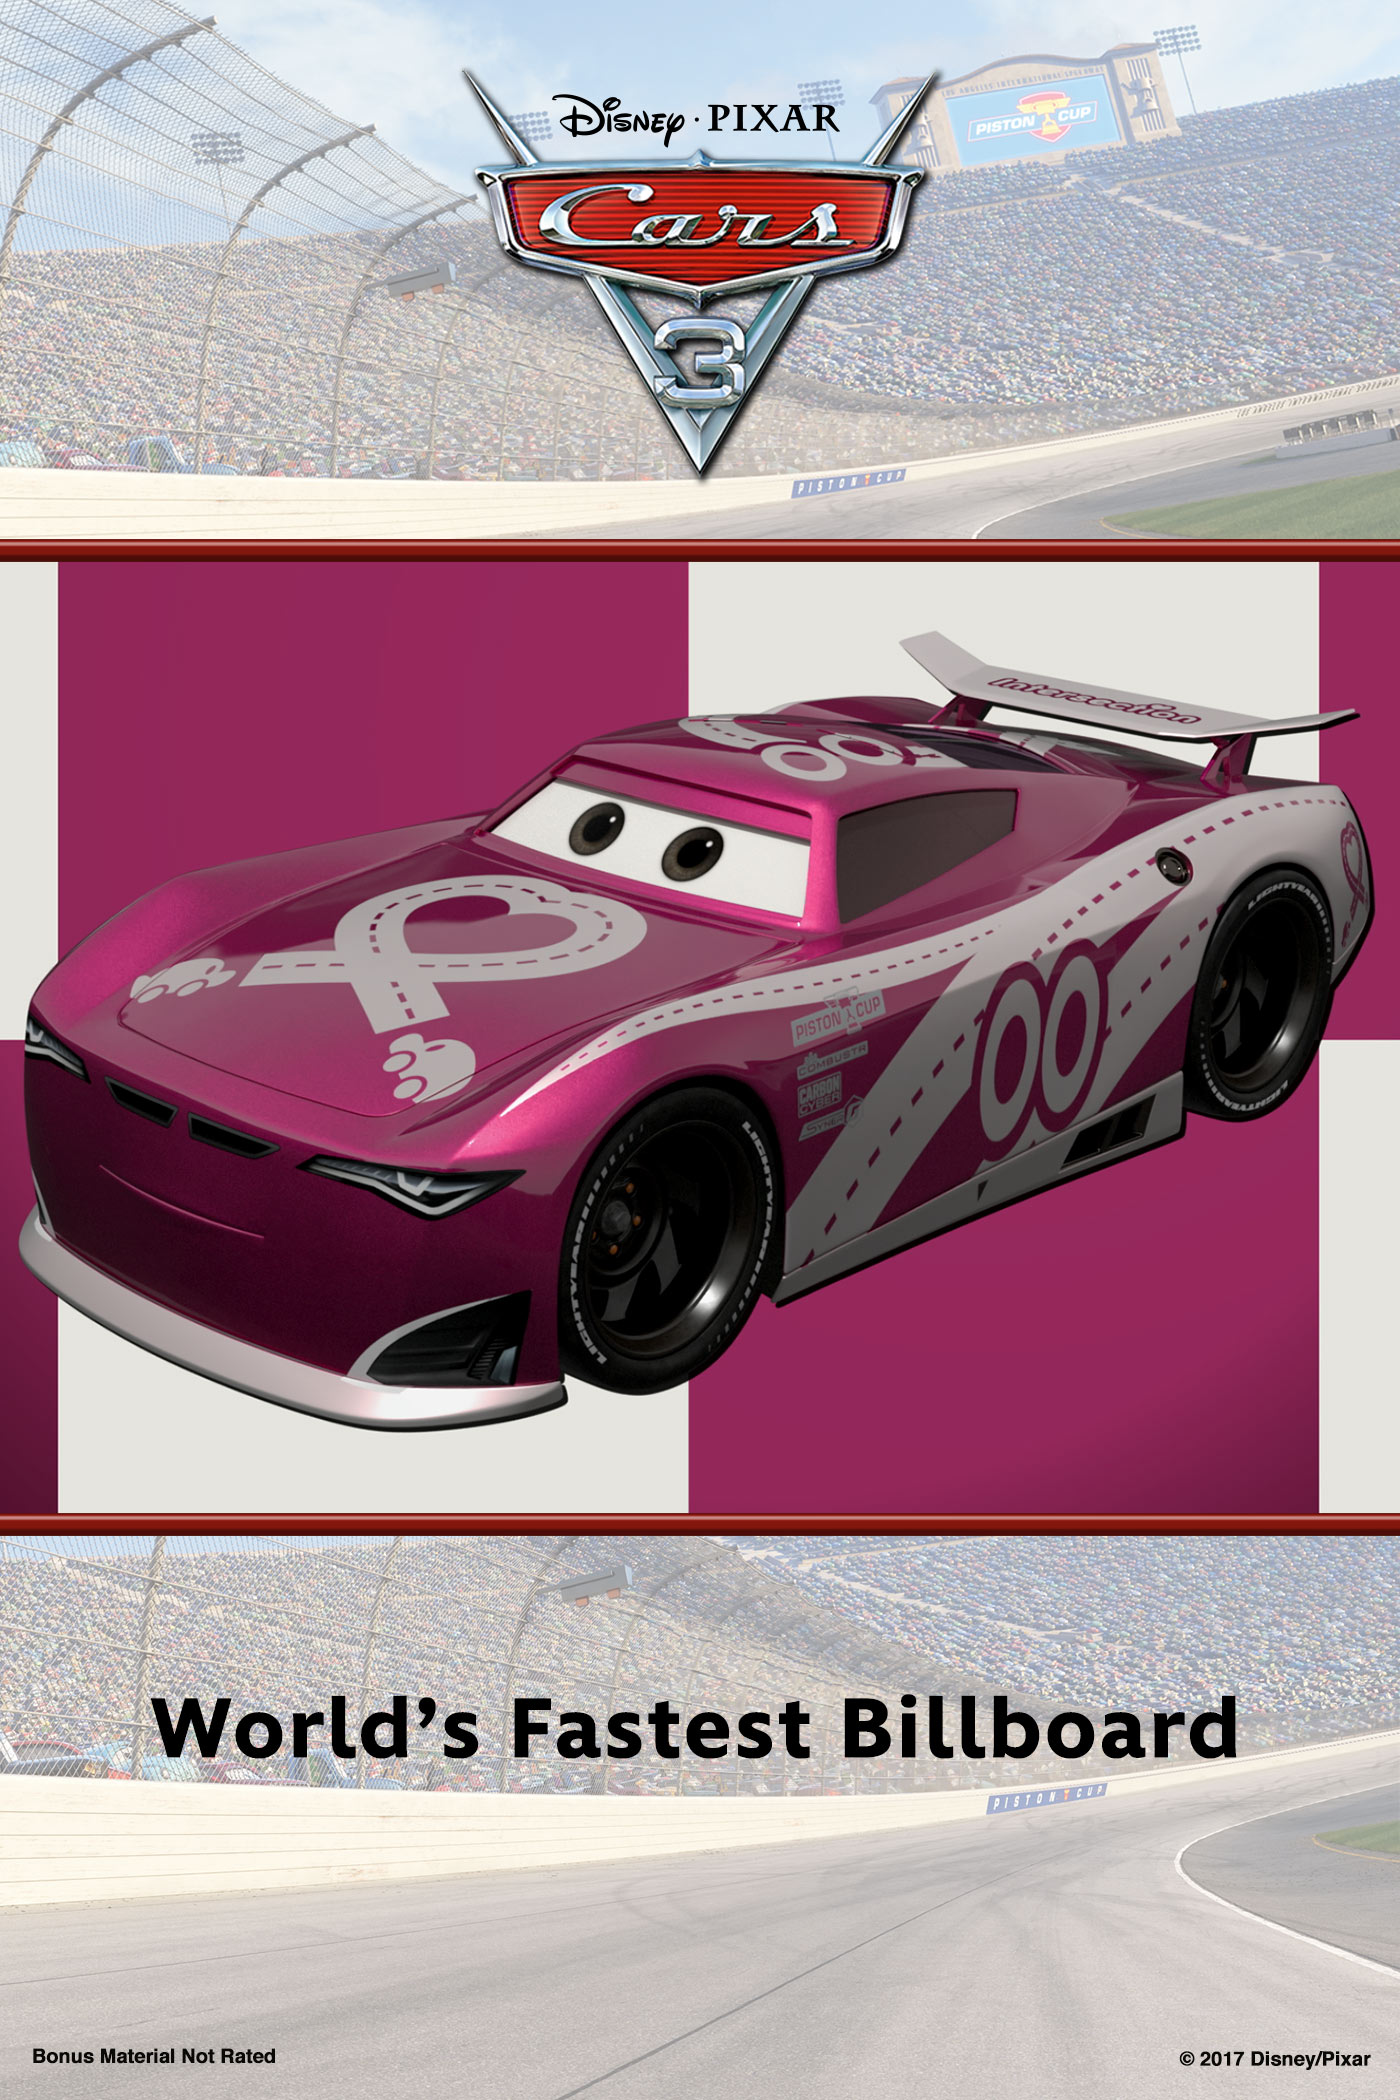 World's Fastest Billboard